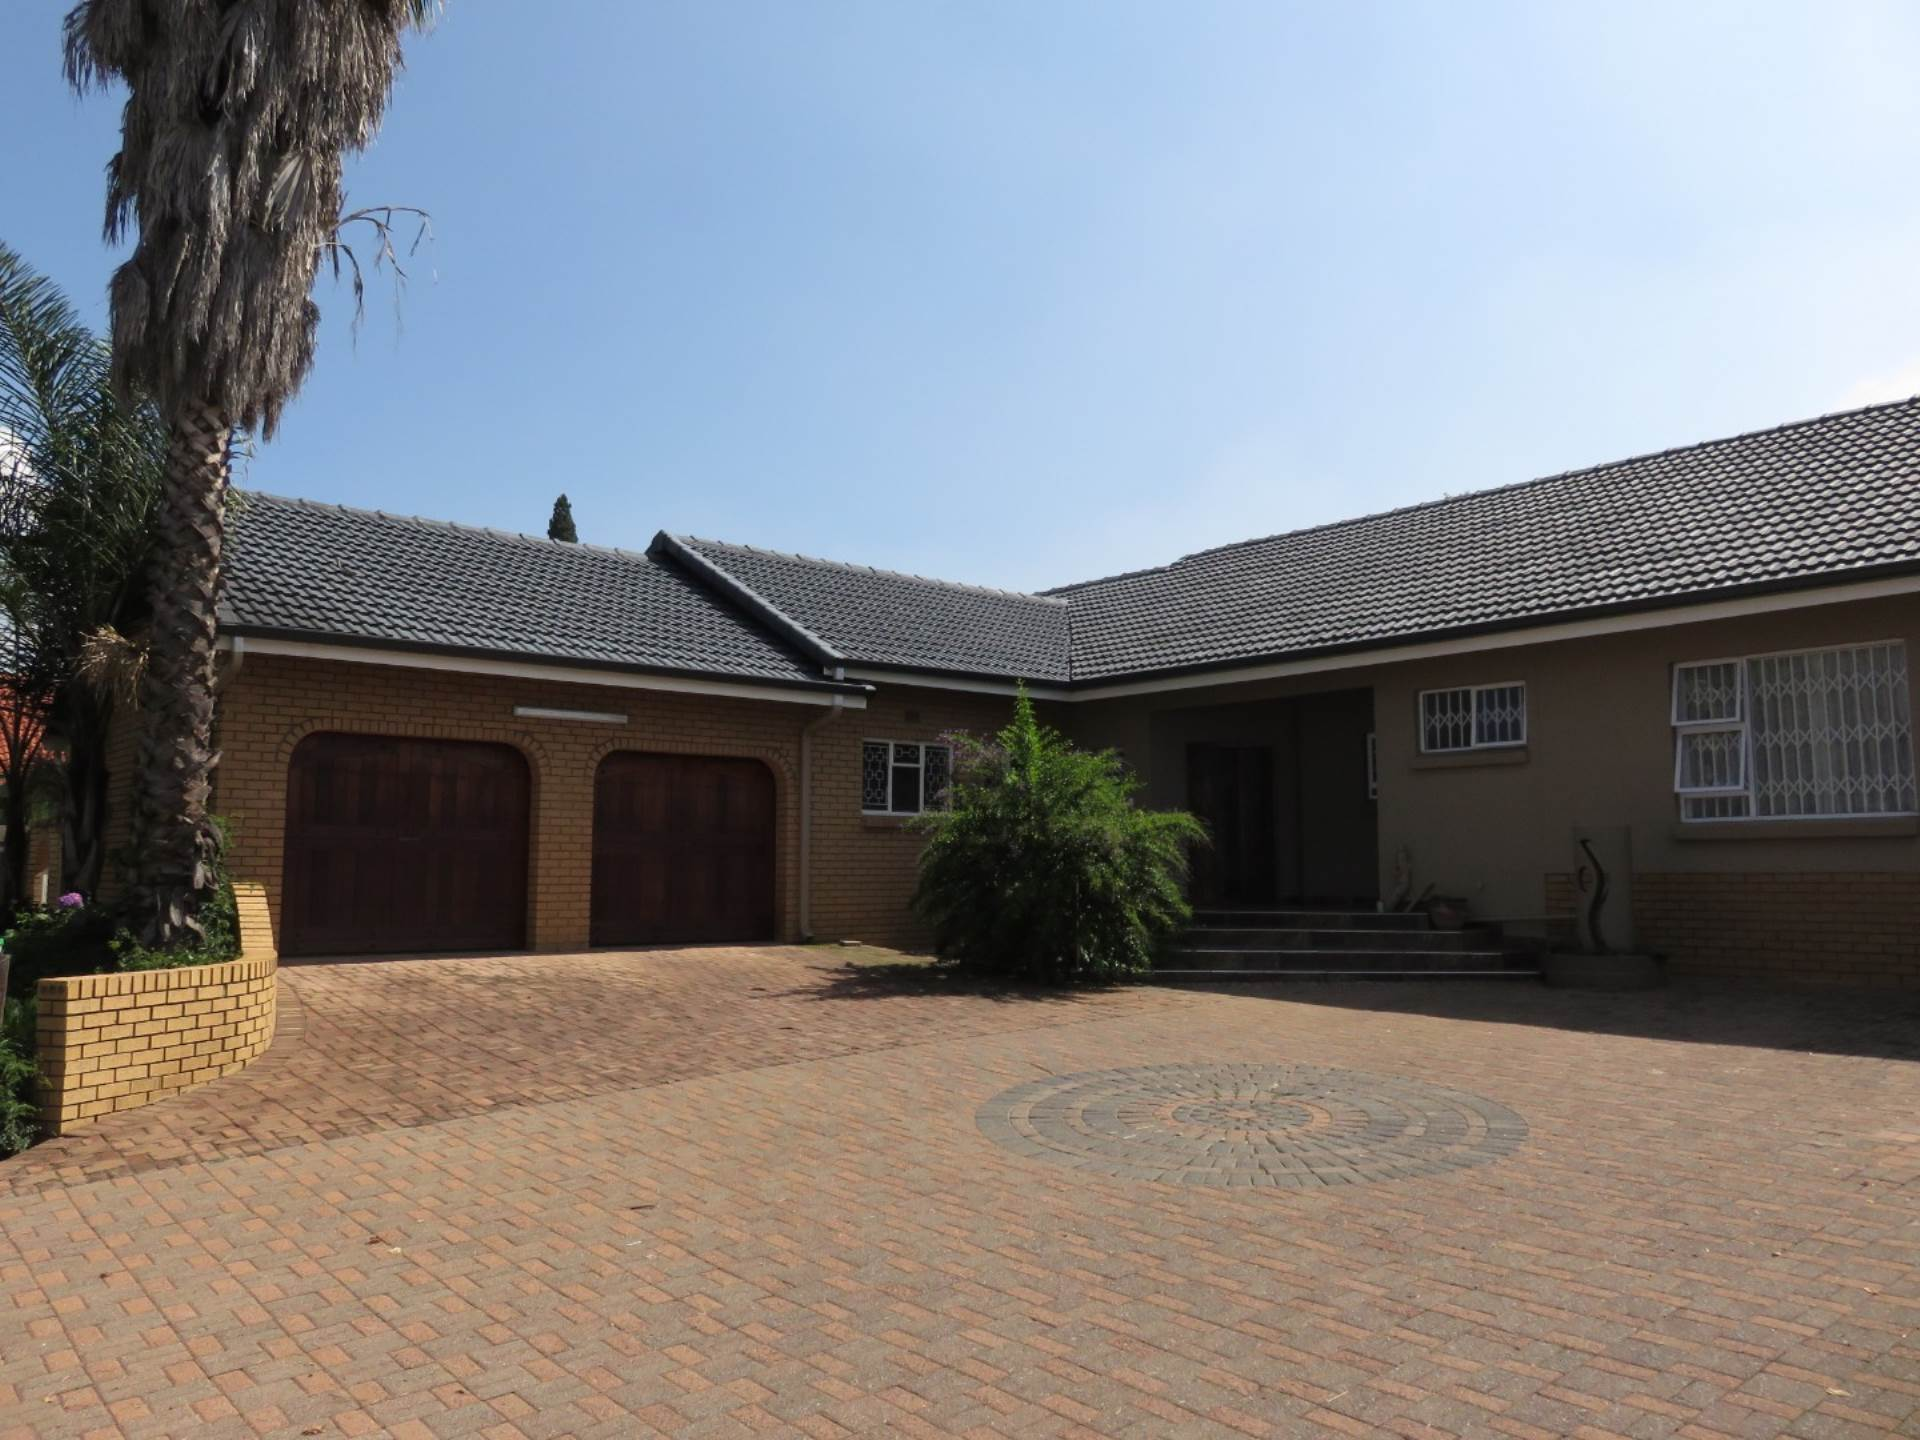 Front View & Double garage